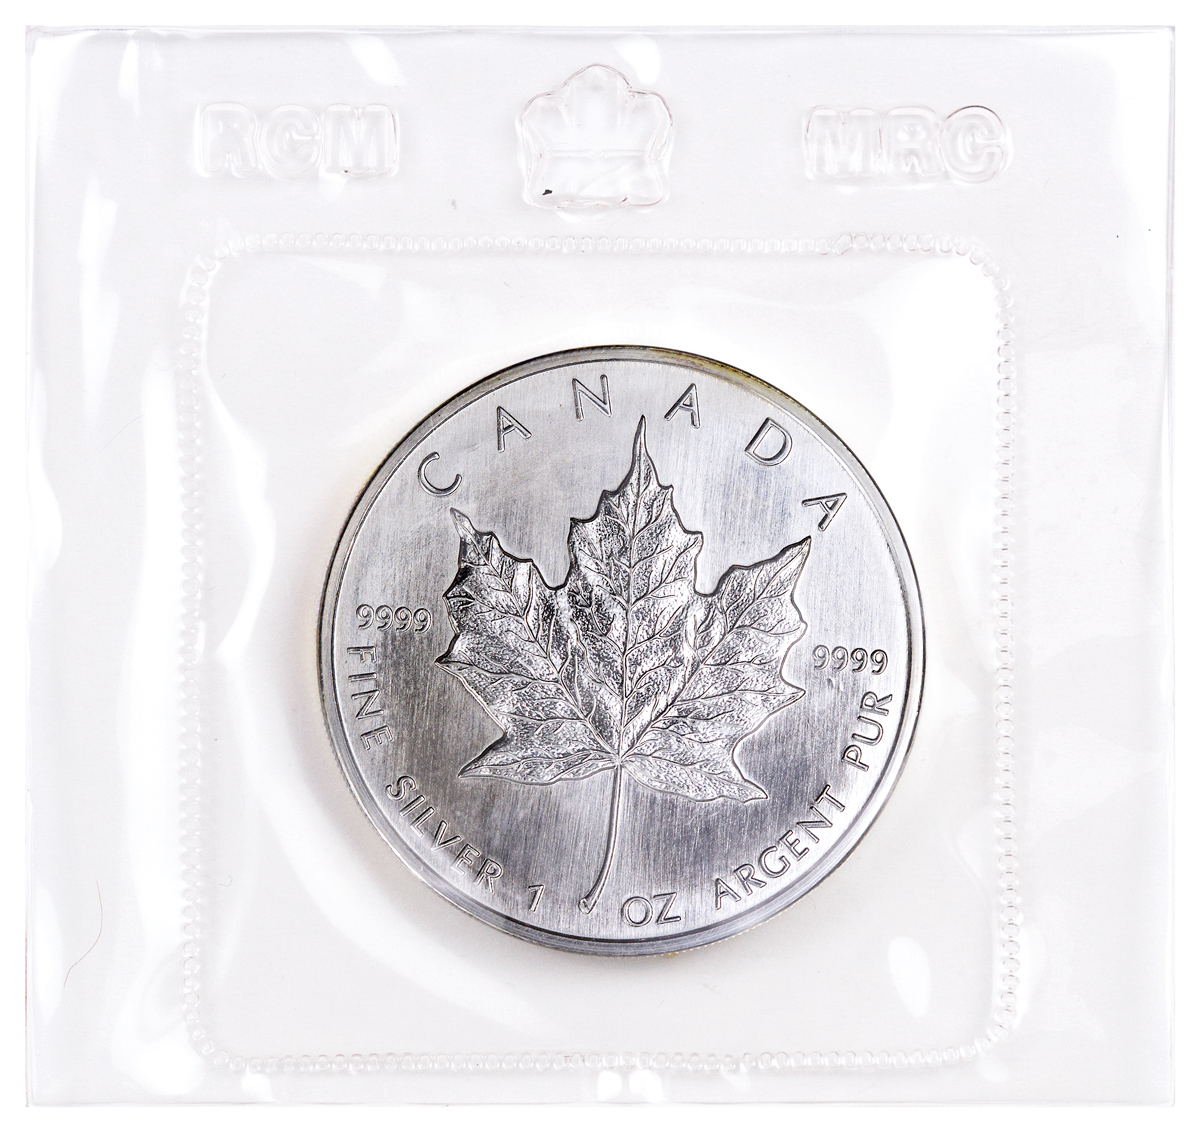 1989 Canada $5 1 oz. Silver Maple Leaf - GEM BU (Sealed in Original Mint Plastic)